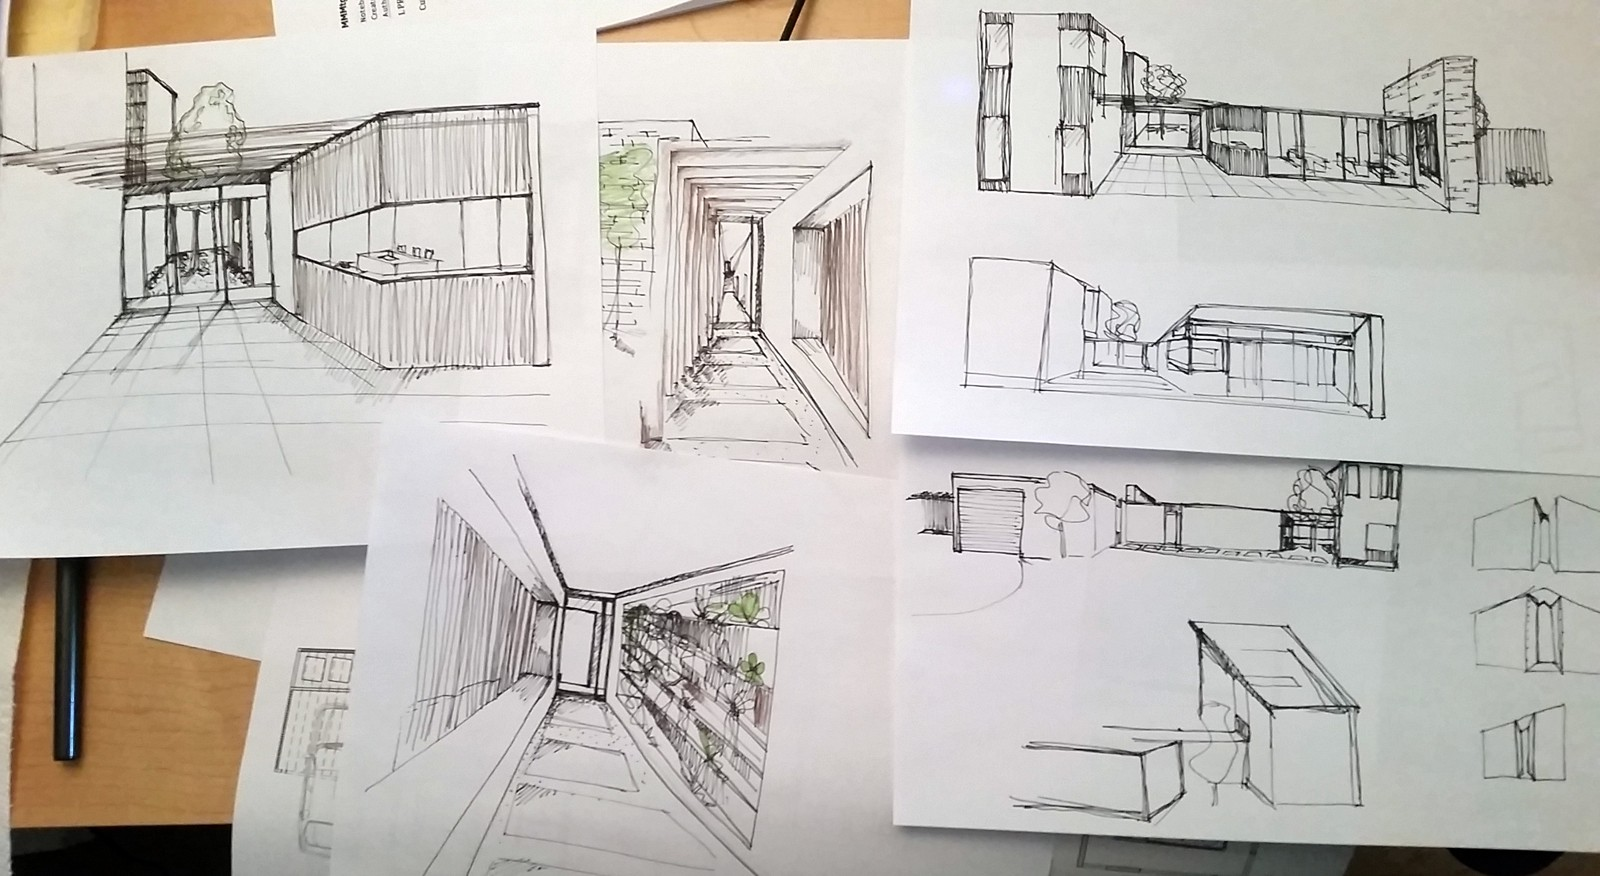 We will often pair these vignette sketches with inspiration images we collect through the process to present a better walk through of our ideas